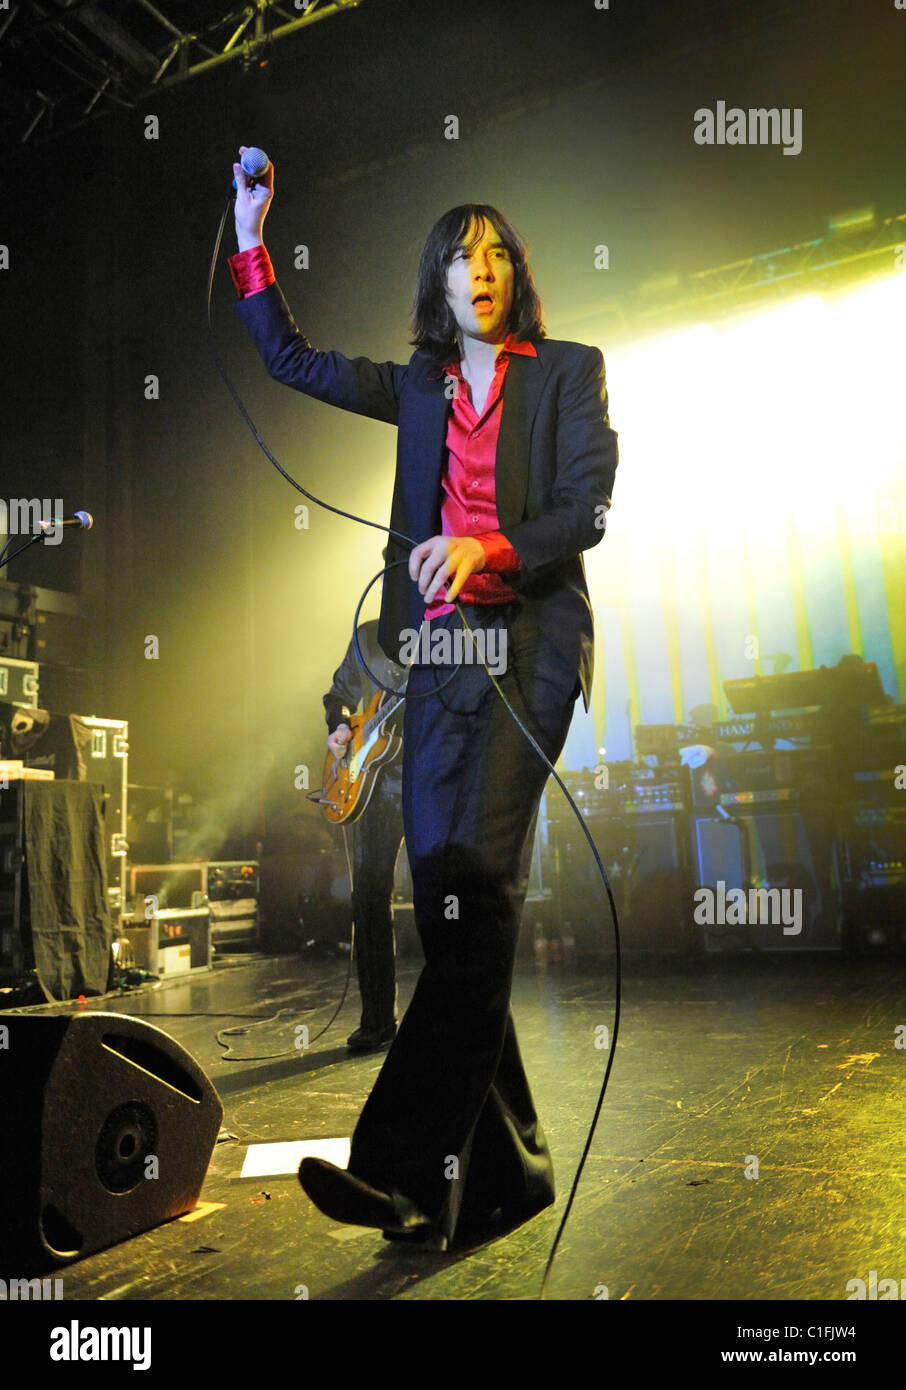 Bobby Gillespie and Rock band Primal Scream in concert performing their album Screamadelica, the O2 Academy, Birmingham - Stock Image